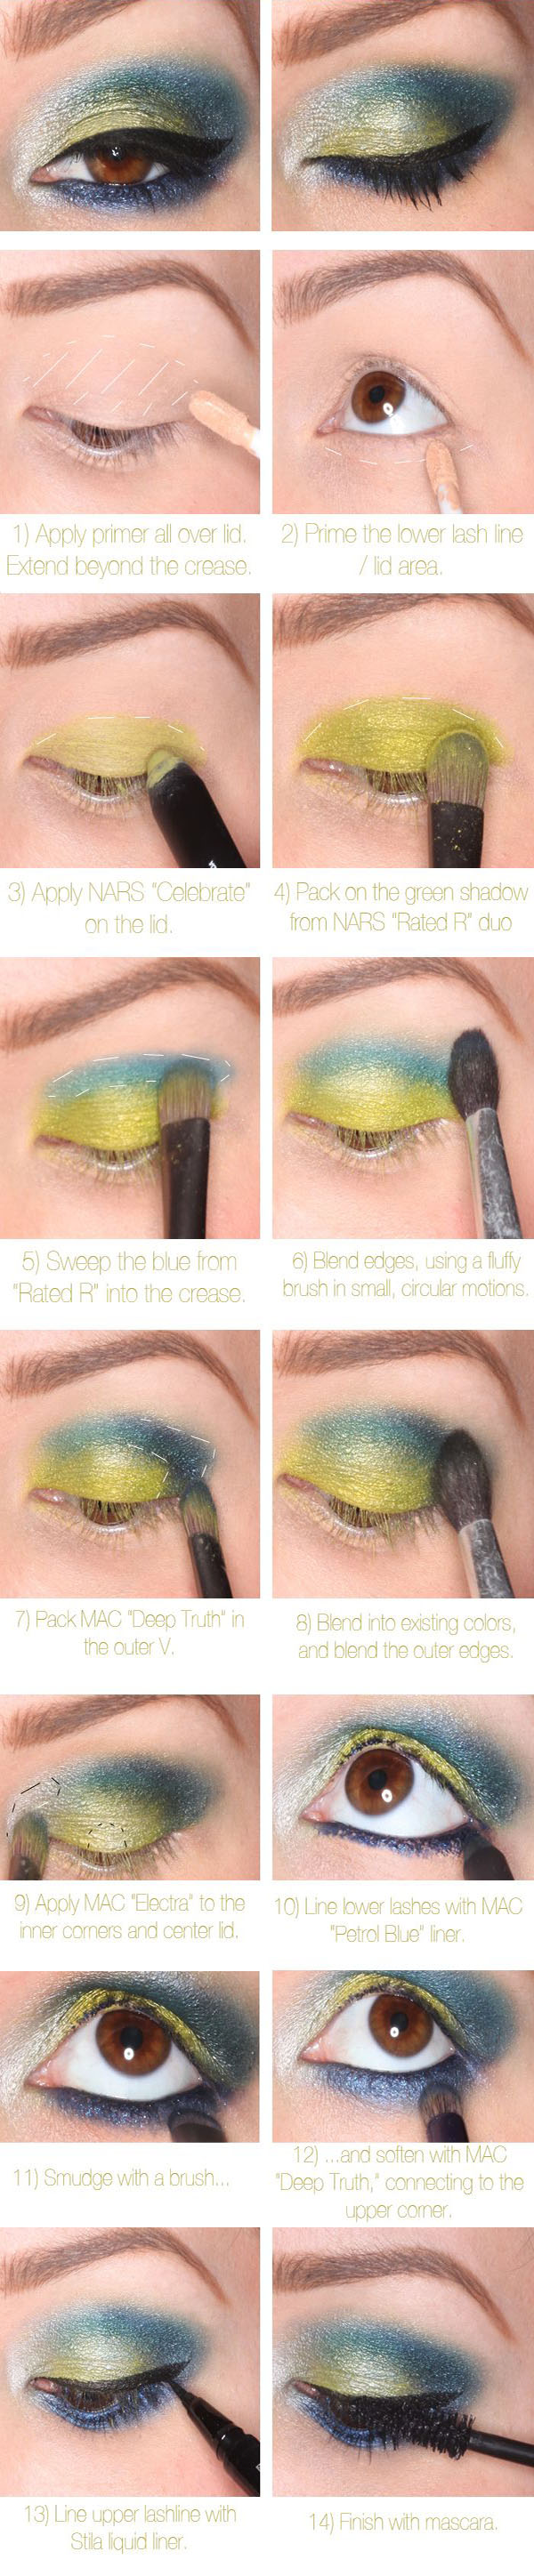 Colorful, Smokey Eye Tutorial